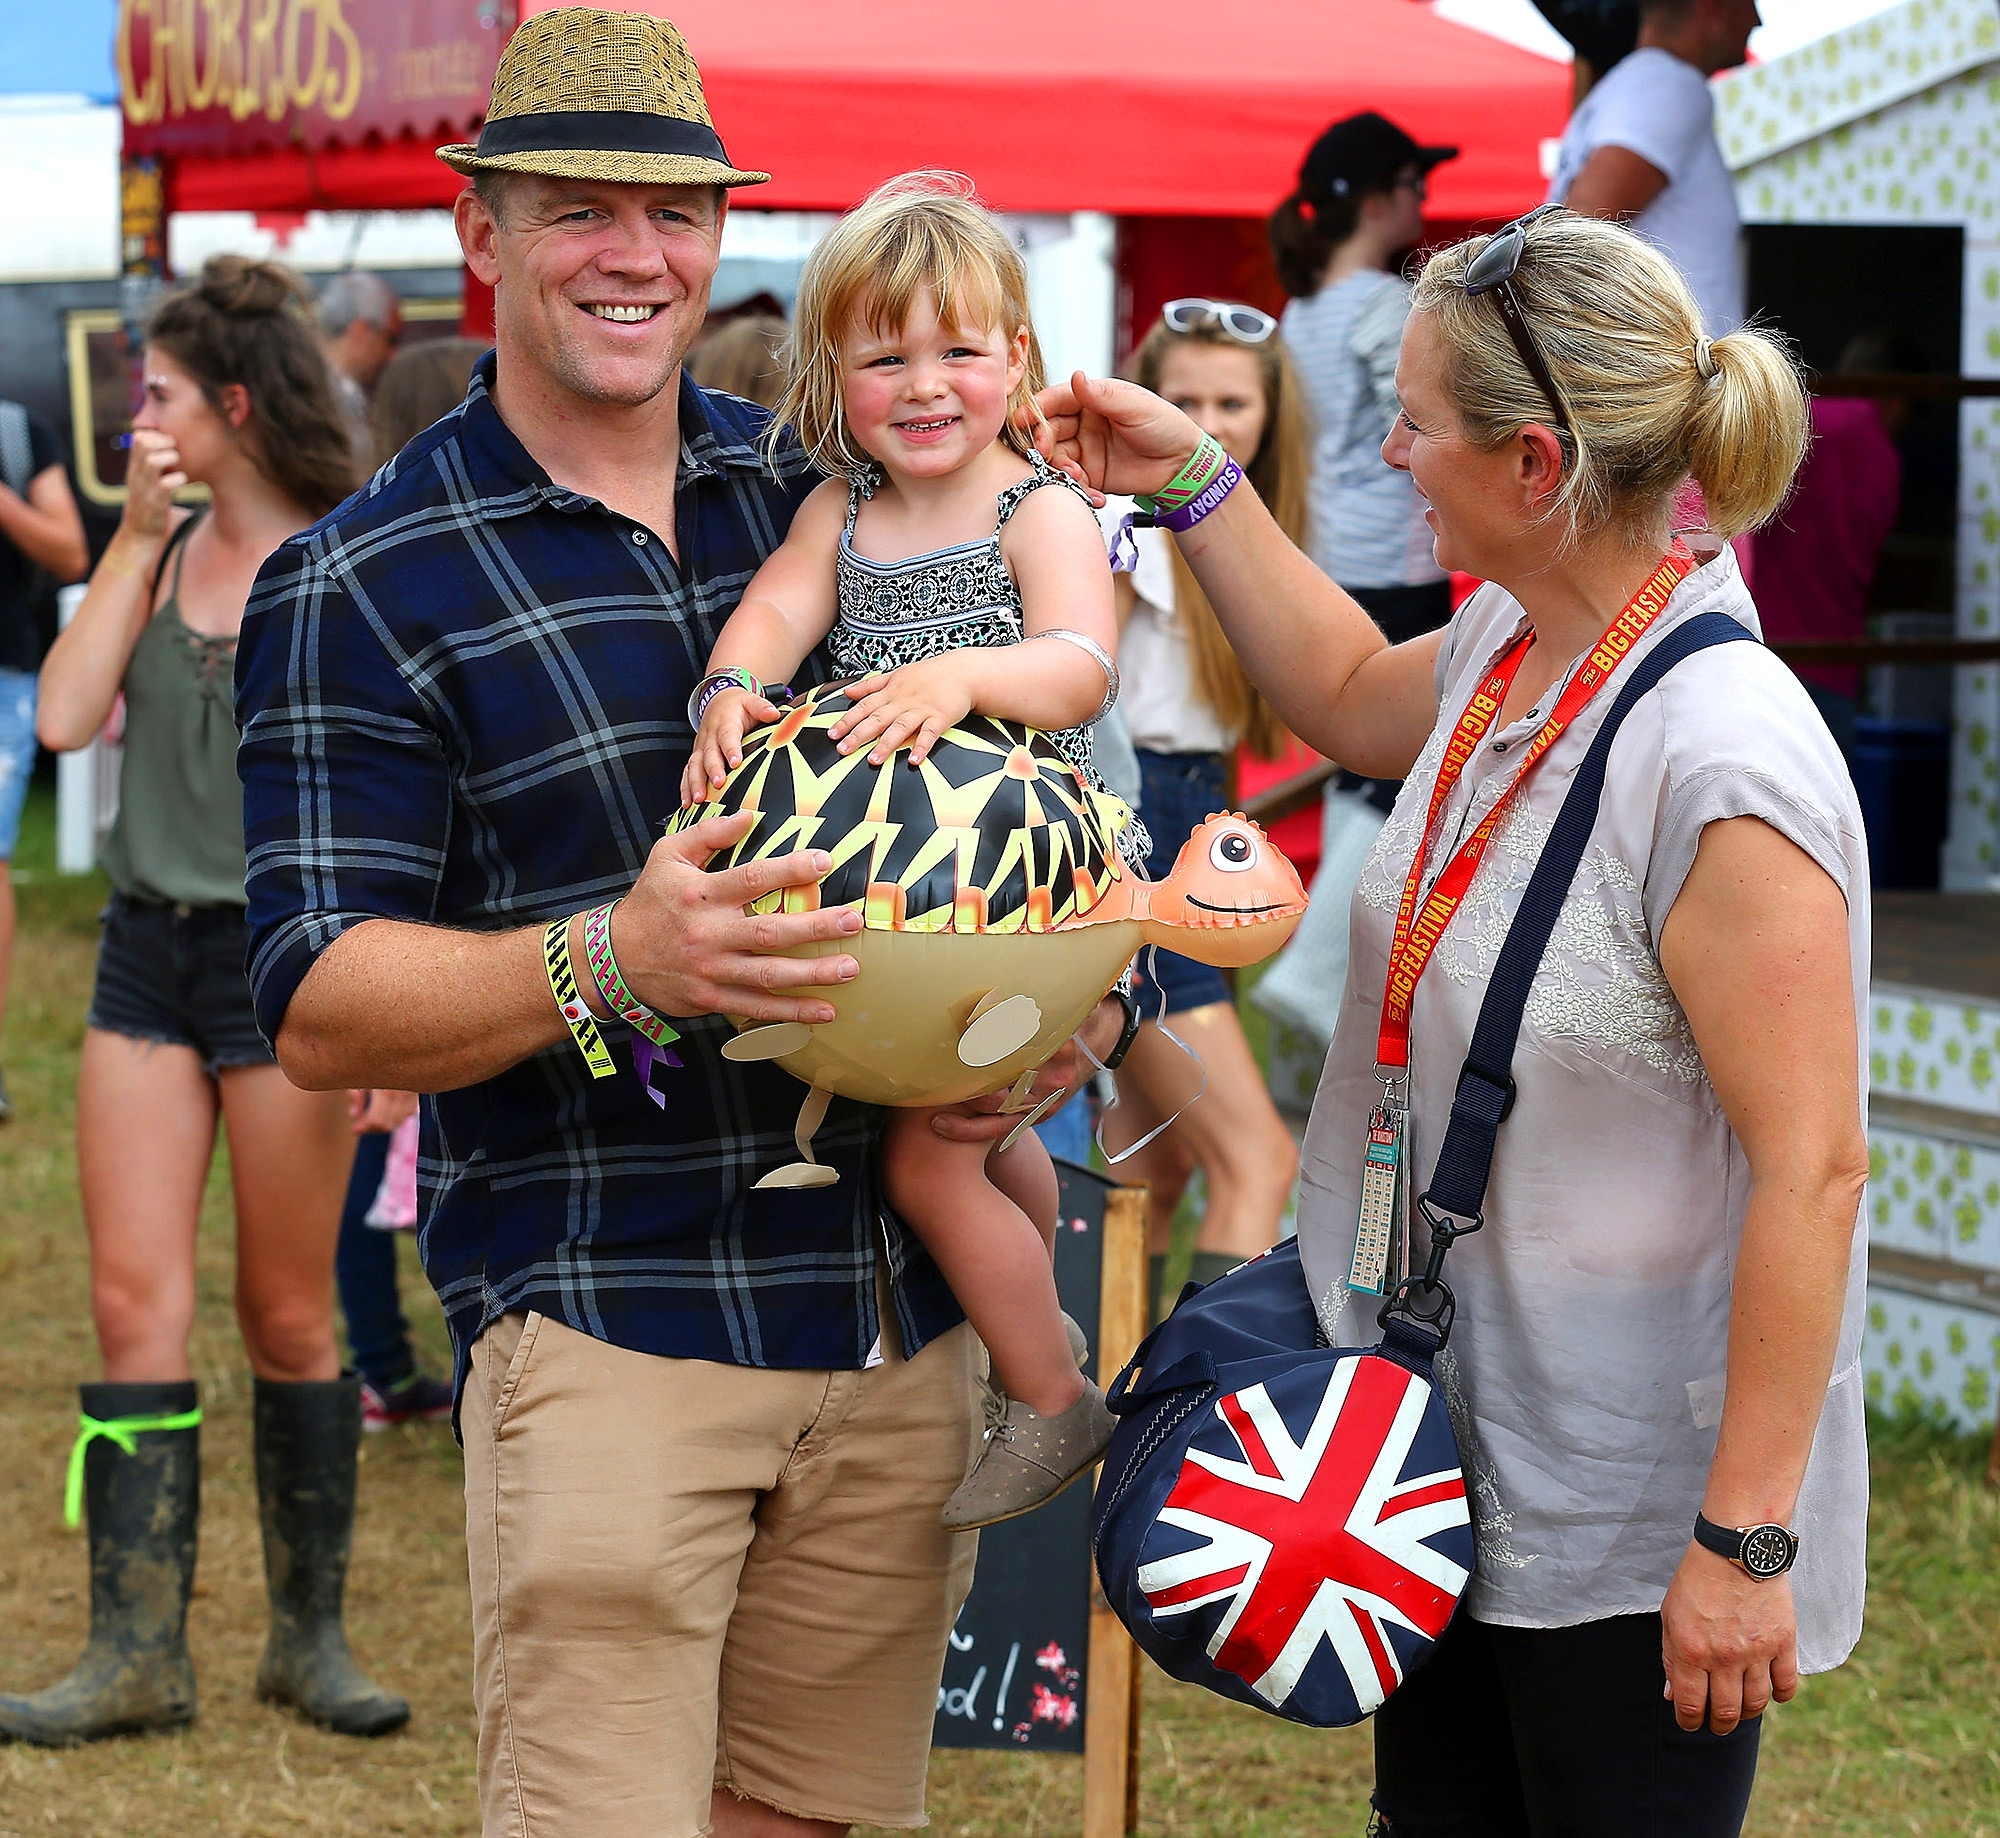 The Queen's Granddaughter Zara Tindall Just Announced a <em>Very</em> Special Name for Her New Daughter tindall-12